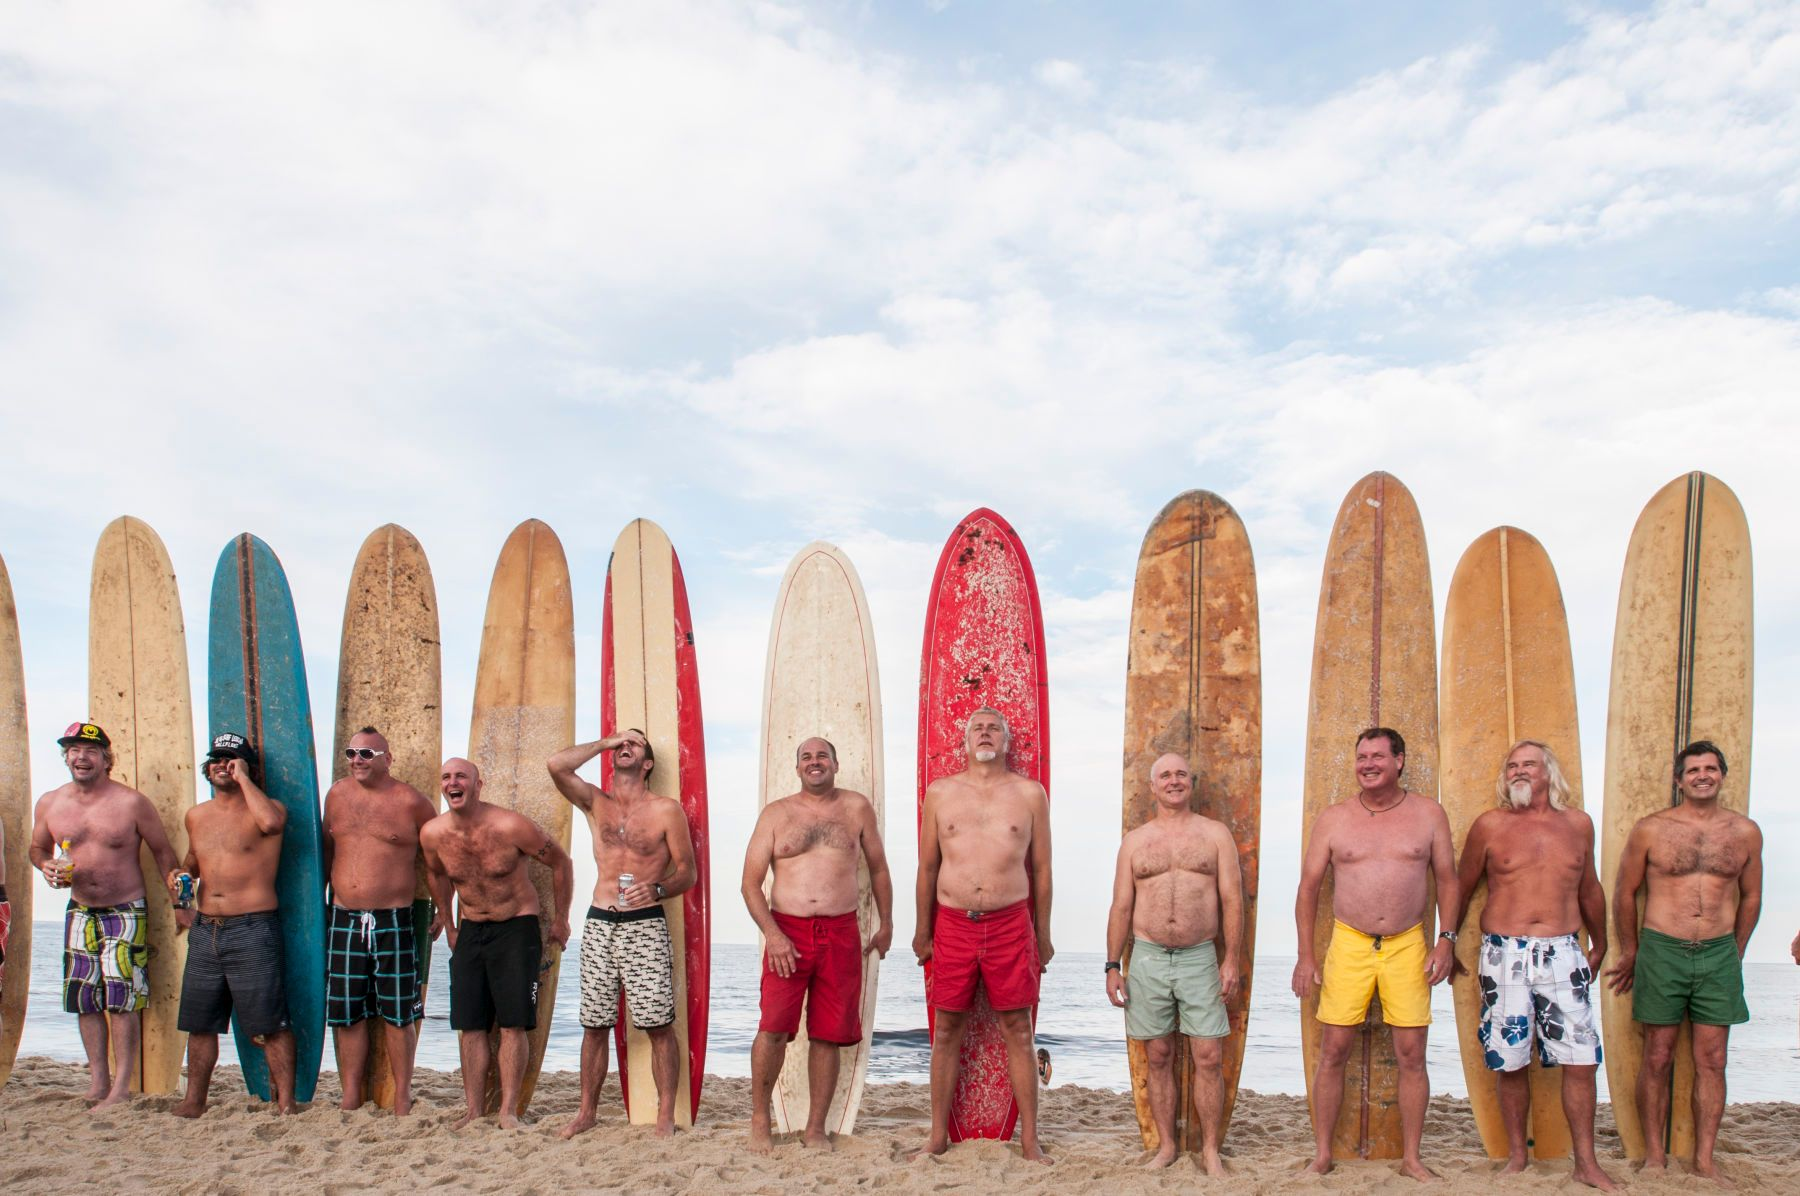 25_1surfers_group.jpg